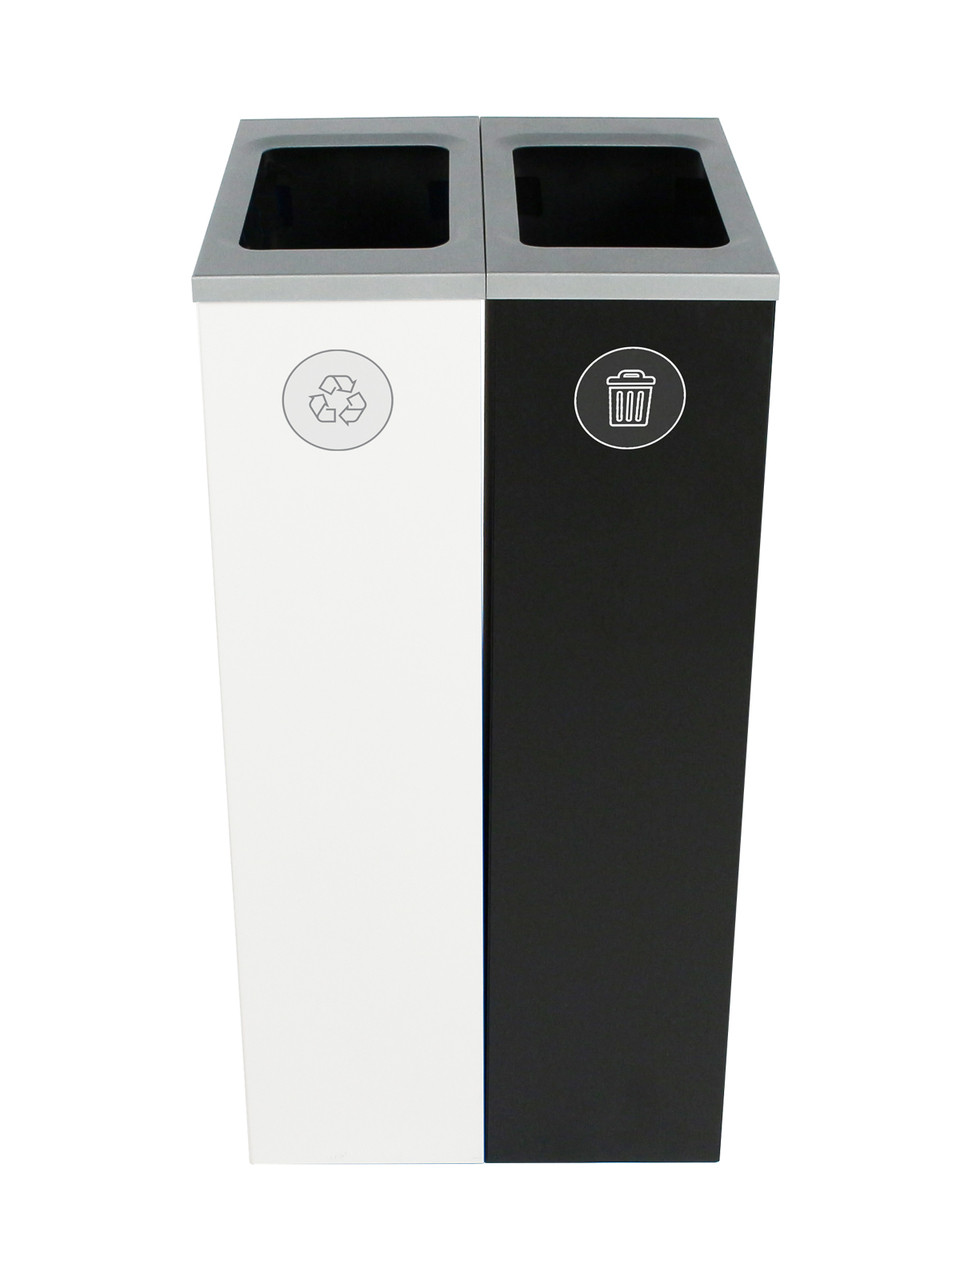 20 Gallon Spectrum Slim Dual Trash Can & Recycle Bin White/Black 8107098-44